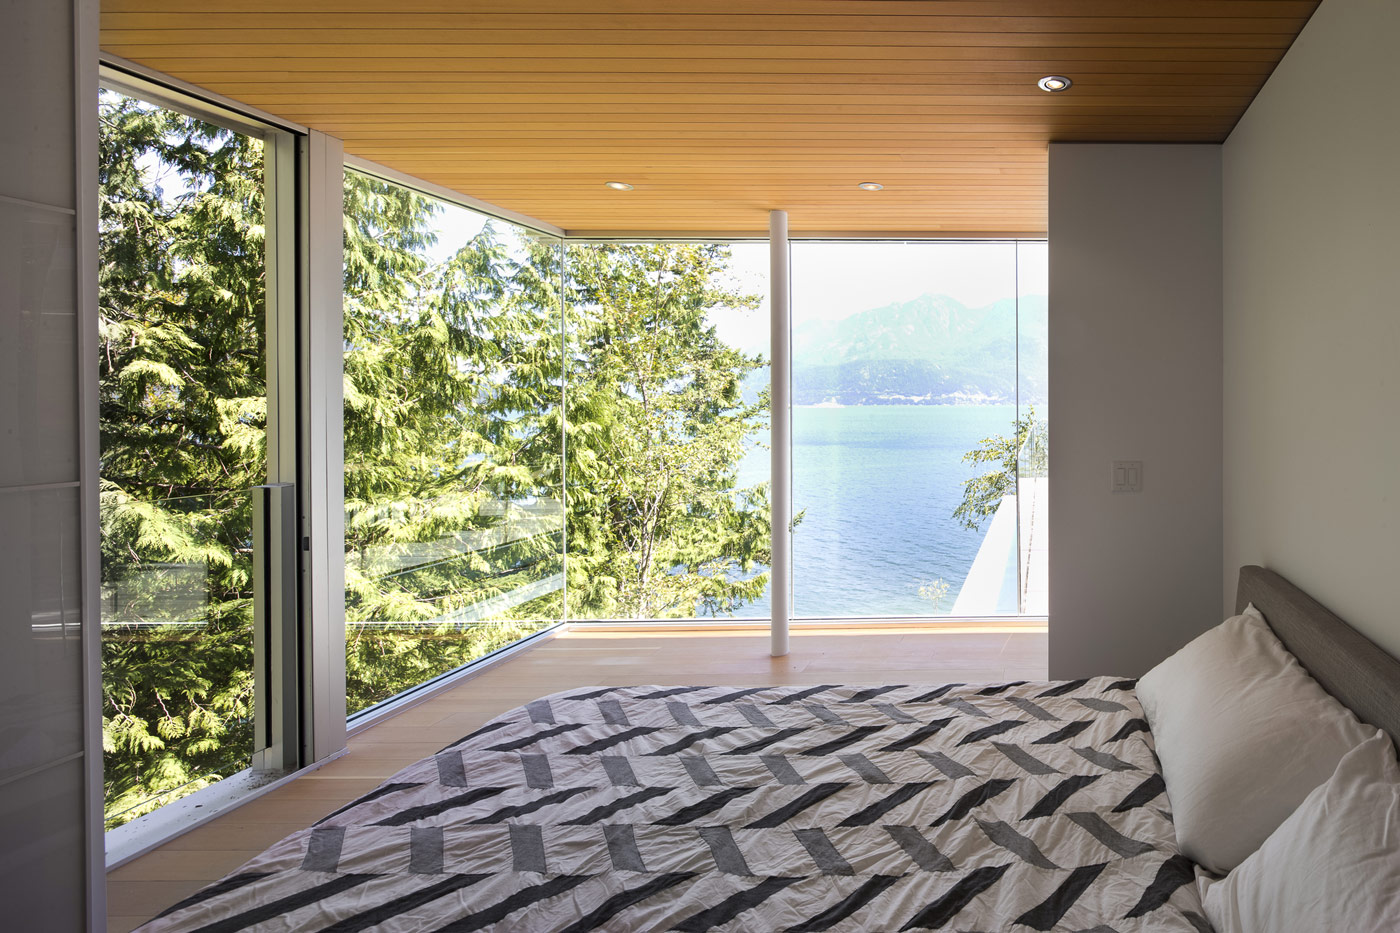 Bedroom, Water Views, House on Gambier Island, British Columbia